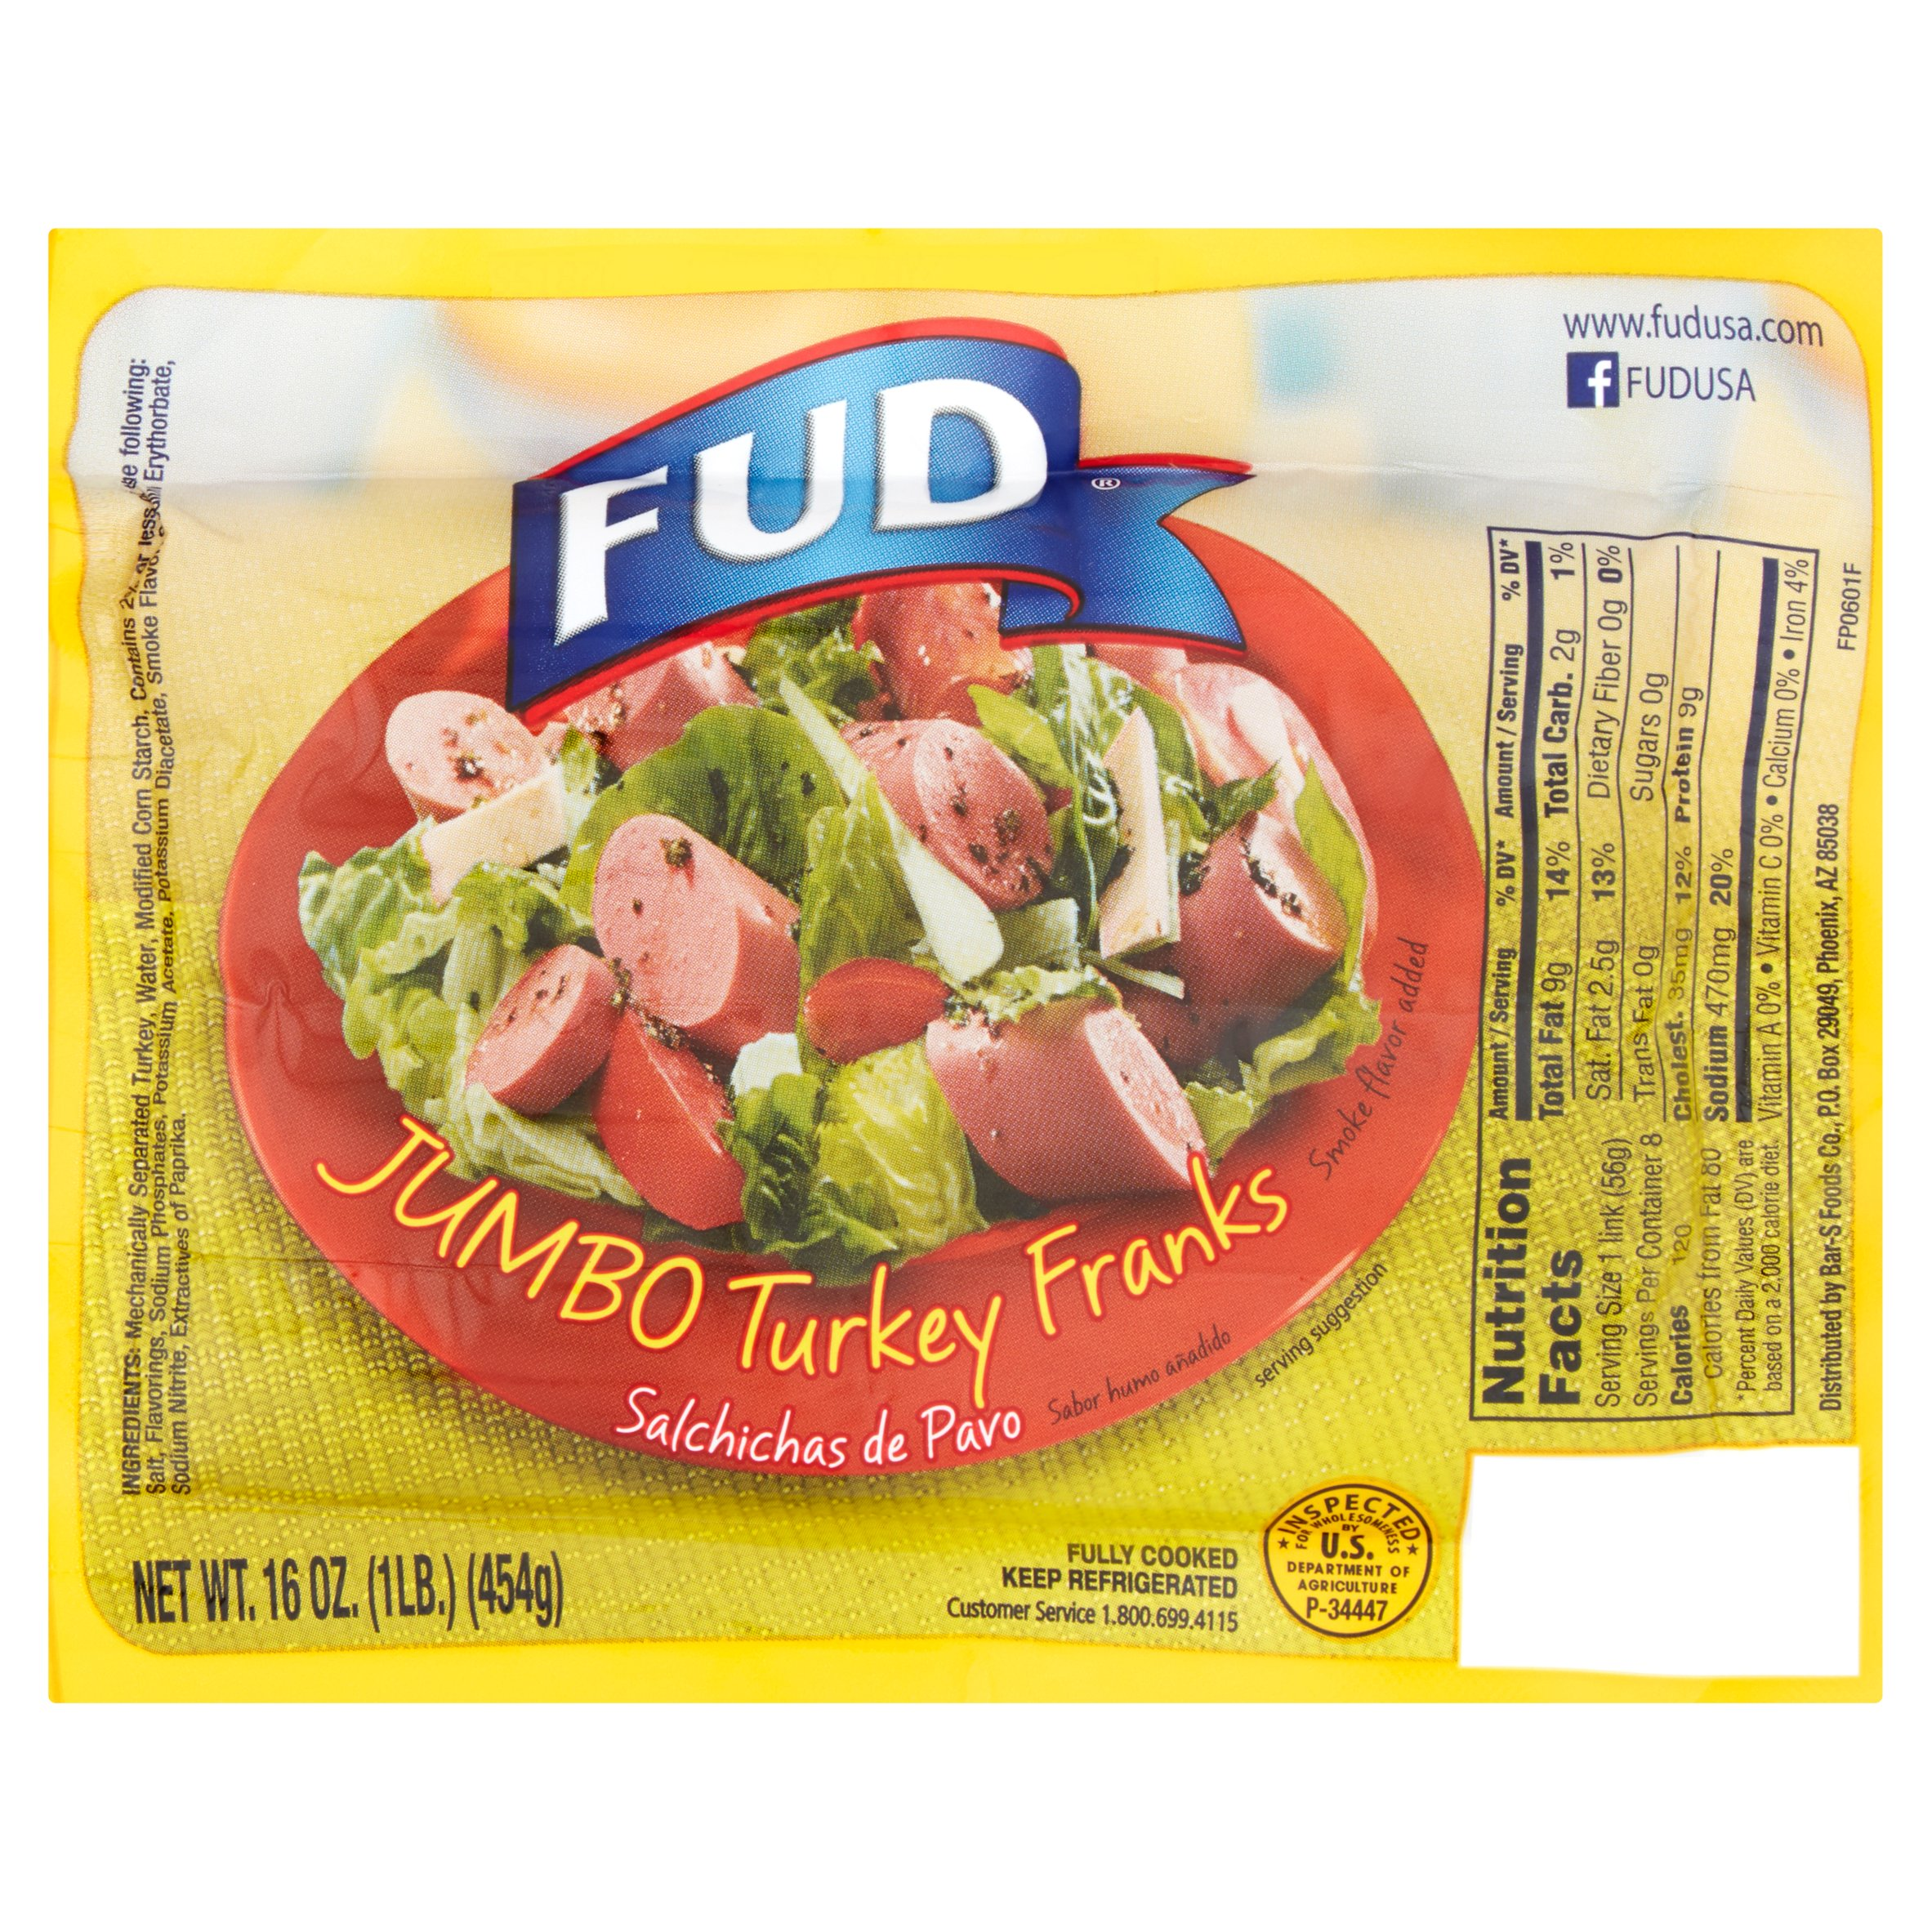 Fud Jumbo Turkey Franks, 16 oz